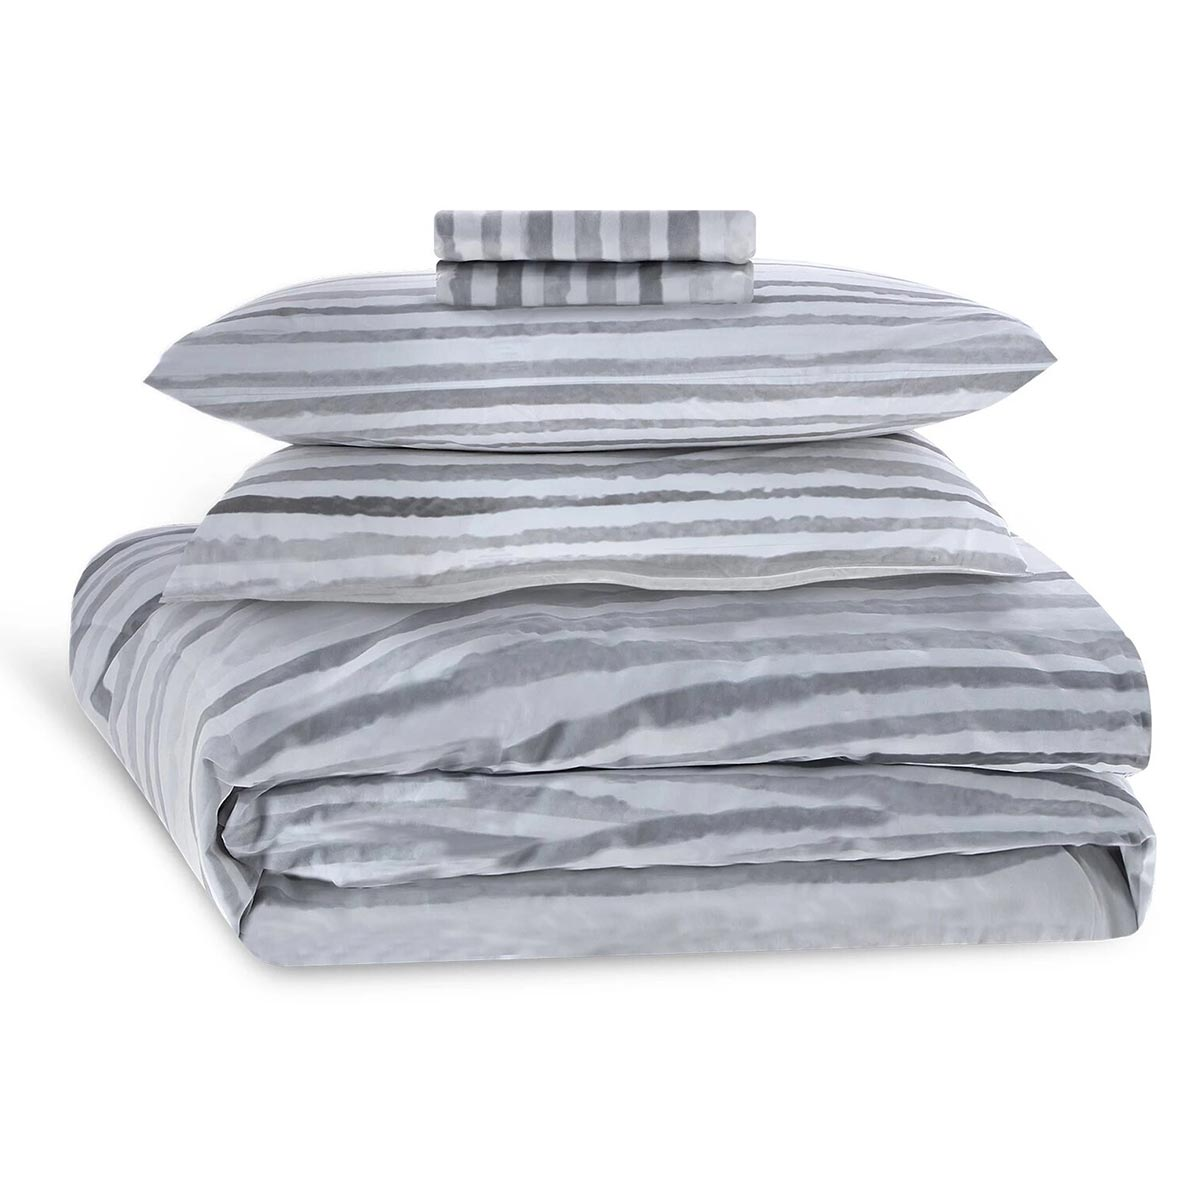 SquareRooms-Awards-Sunday-Bedding-Organic-Sheets